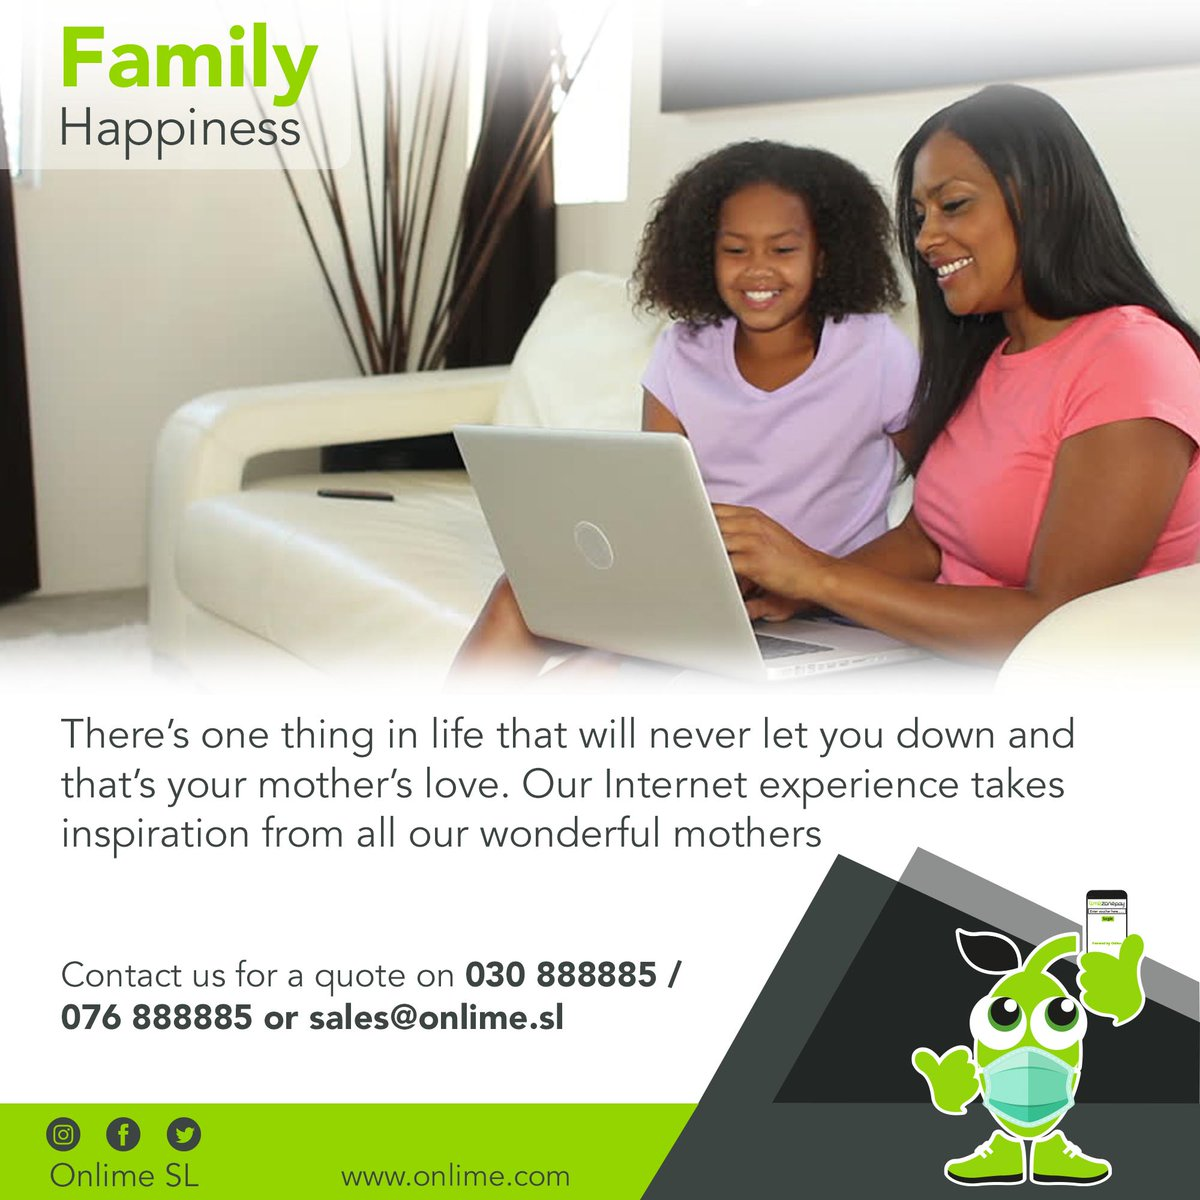 There's one thing in life that will never let you down and that's your mother's love. Our Internet experience takes inspiration from all our wonderful mothers. Connect to #OnlimeInternet today and enjoy super-fast #internetCall 076888885 / 030888885 to get started. #SaloneTwitter https://t.co/xkLoObqYCk